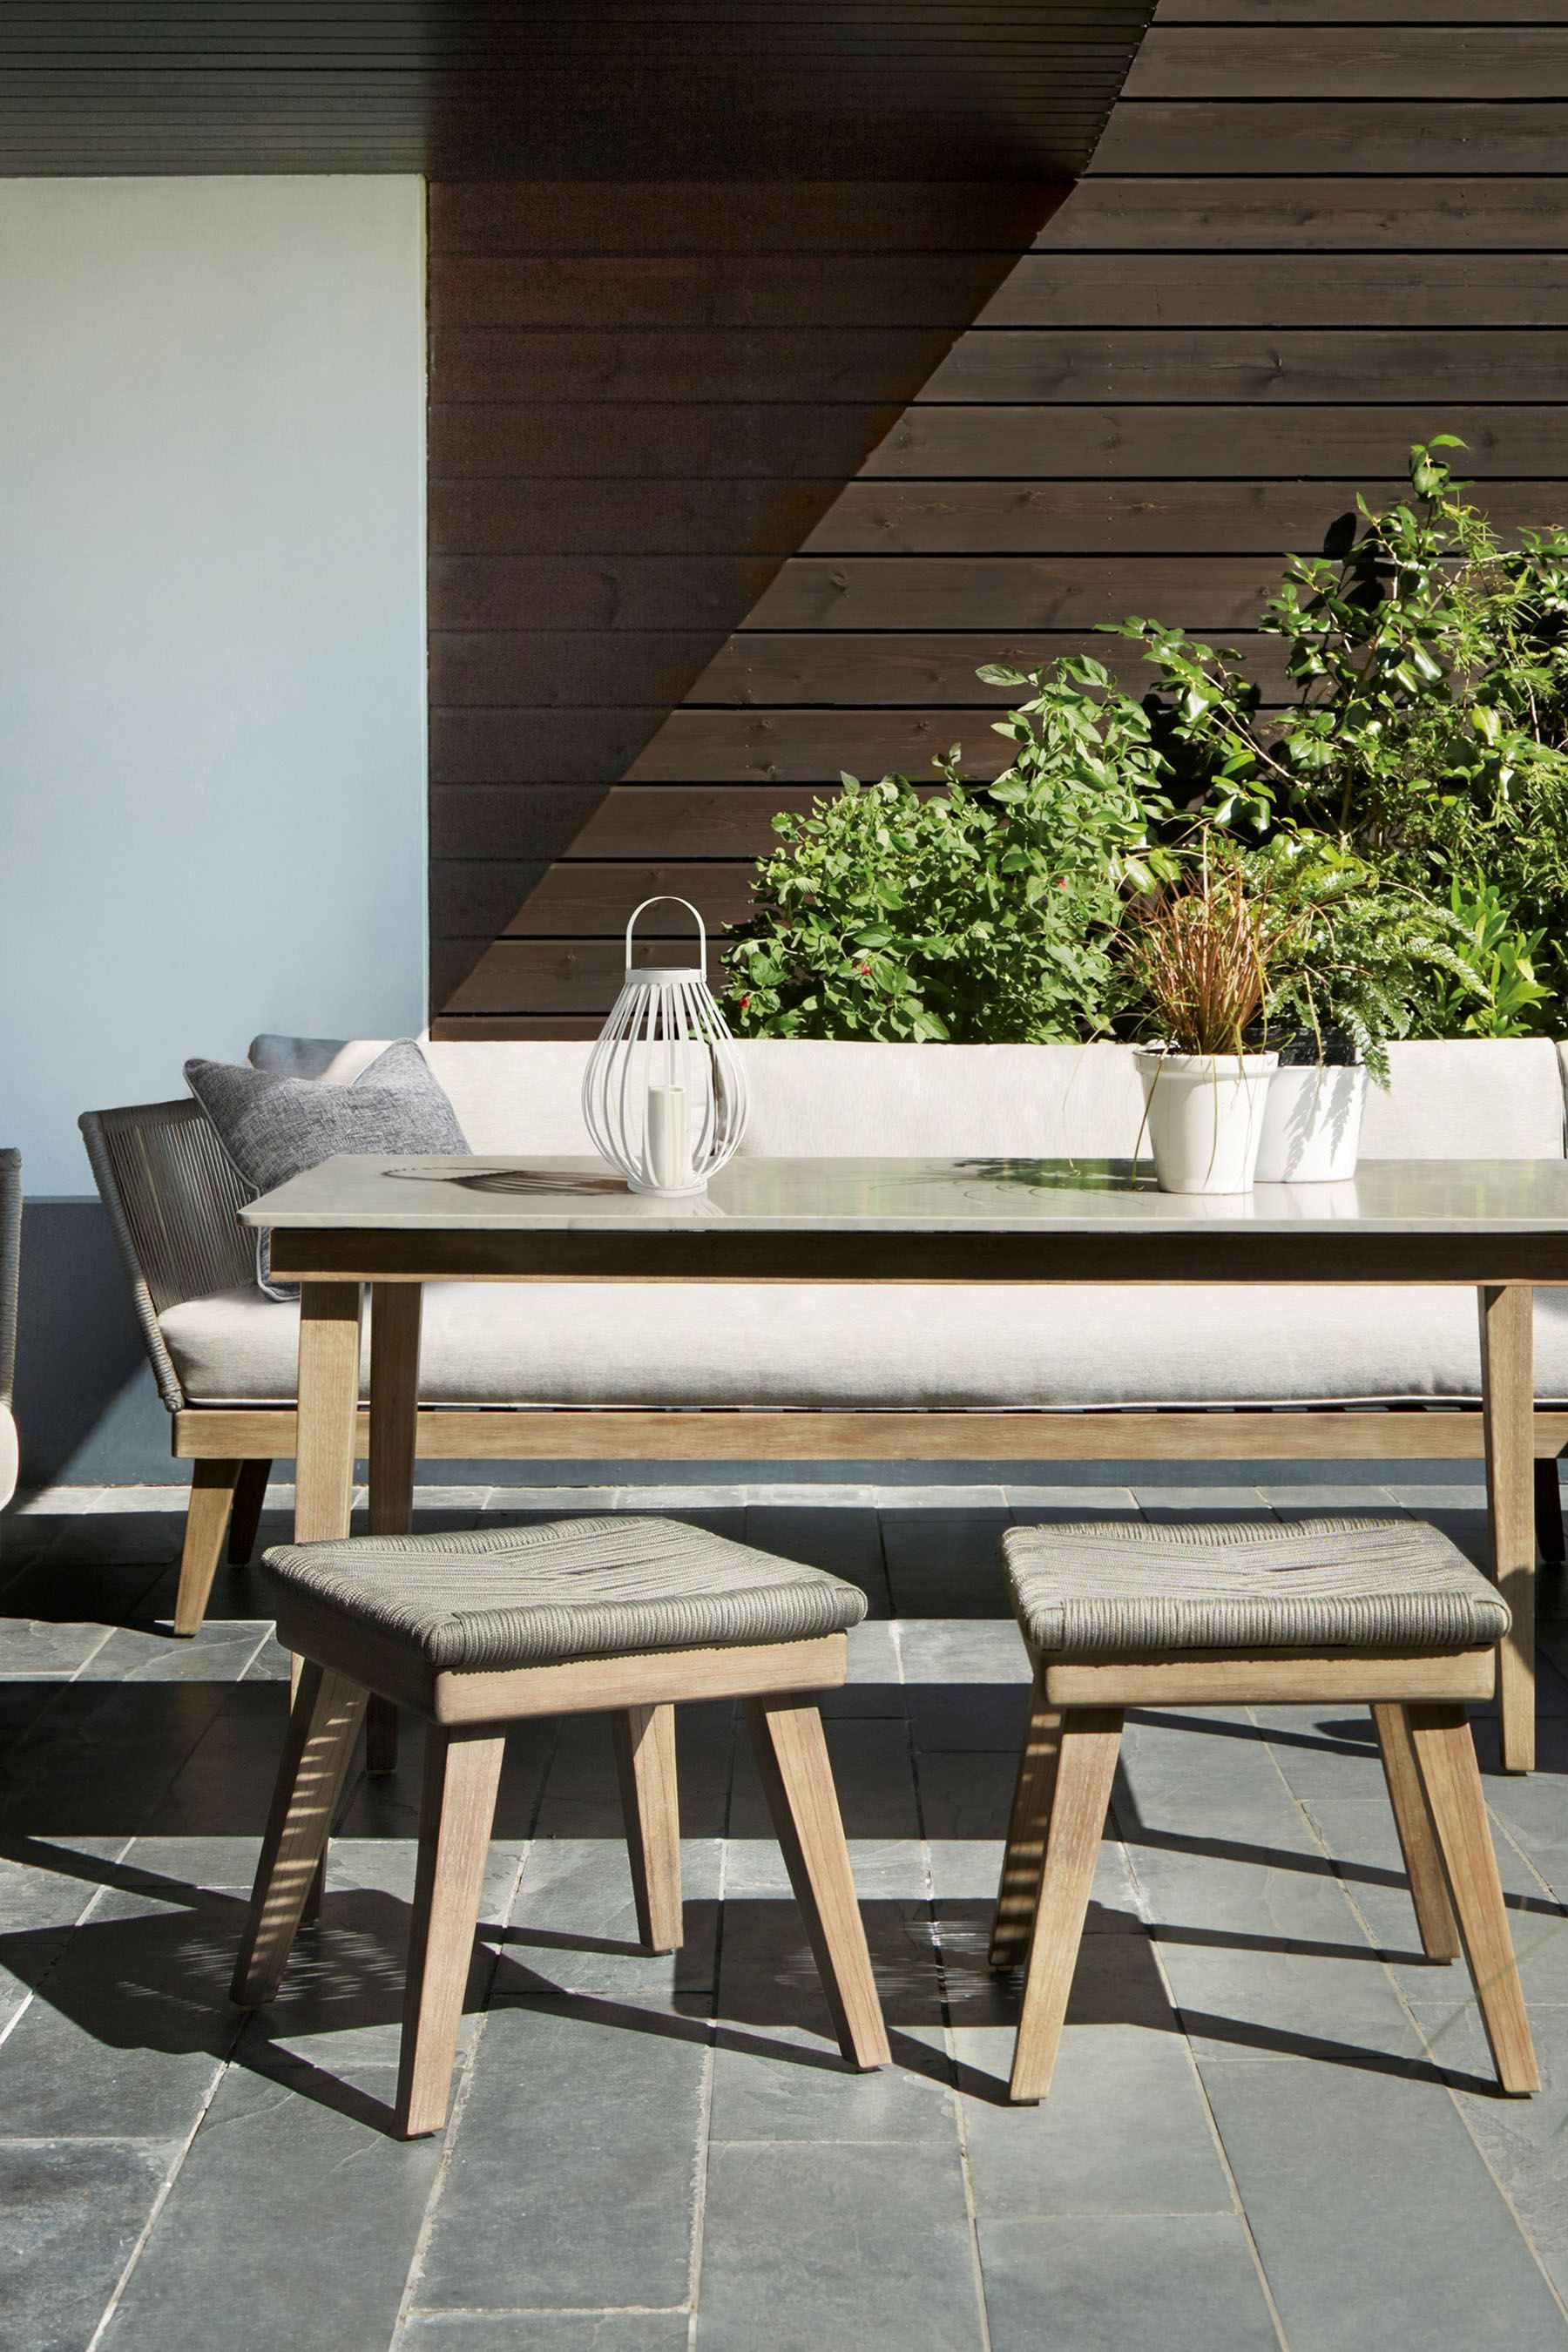 Next Bali Living And Dining Garden Set  Clearance patio furniture